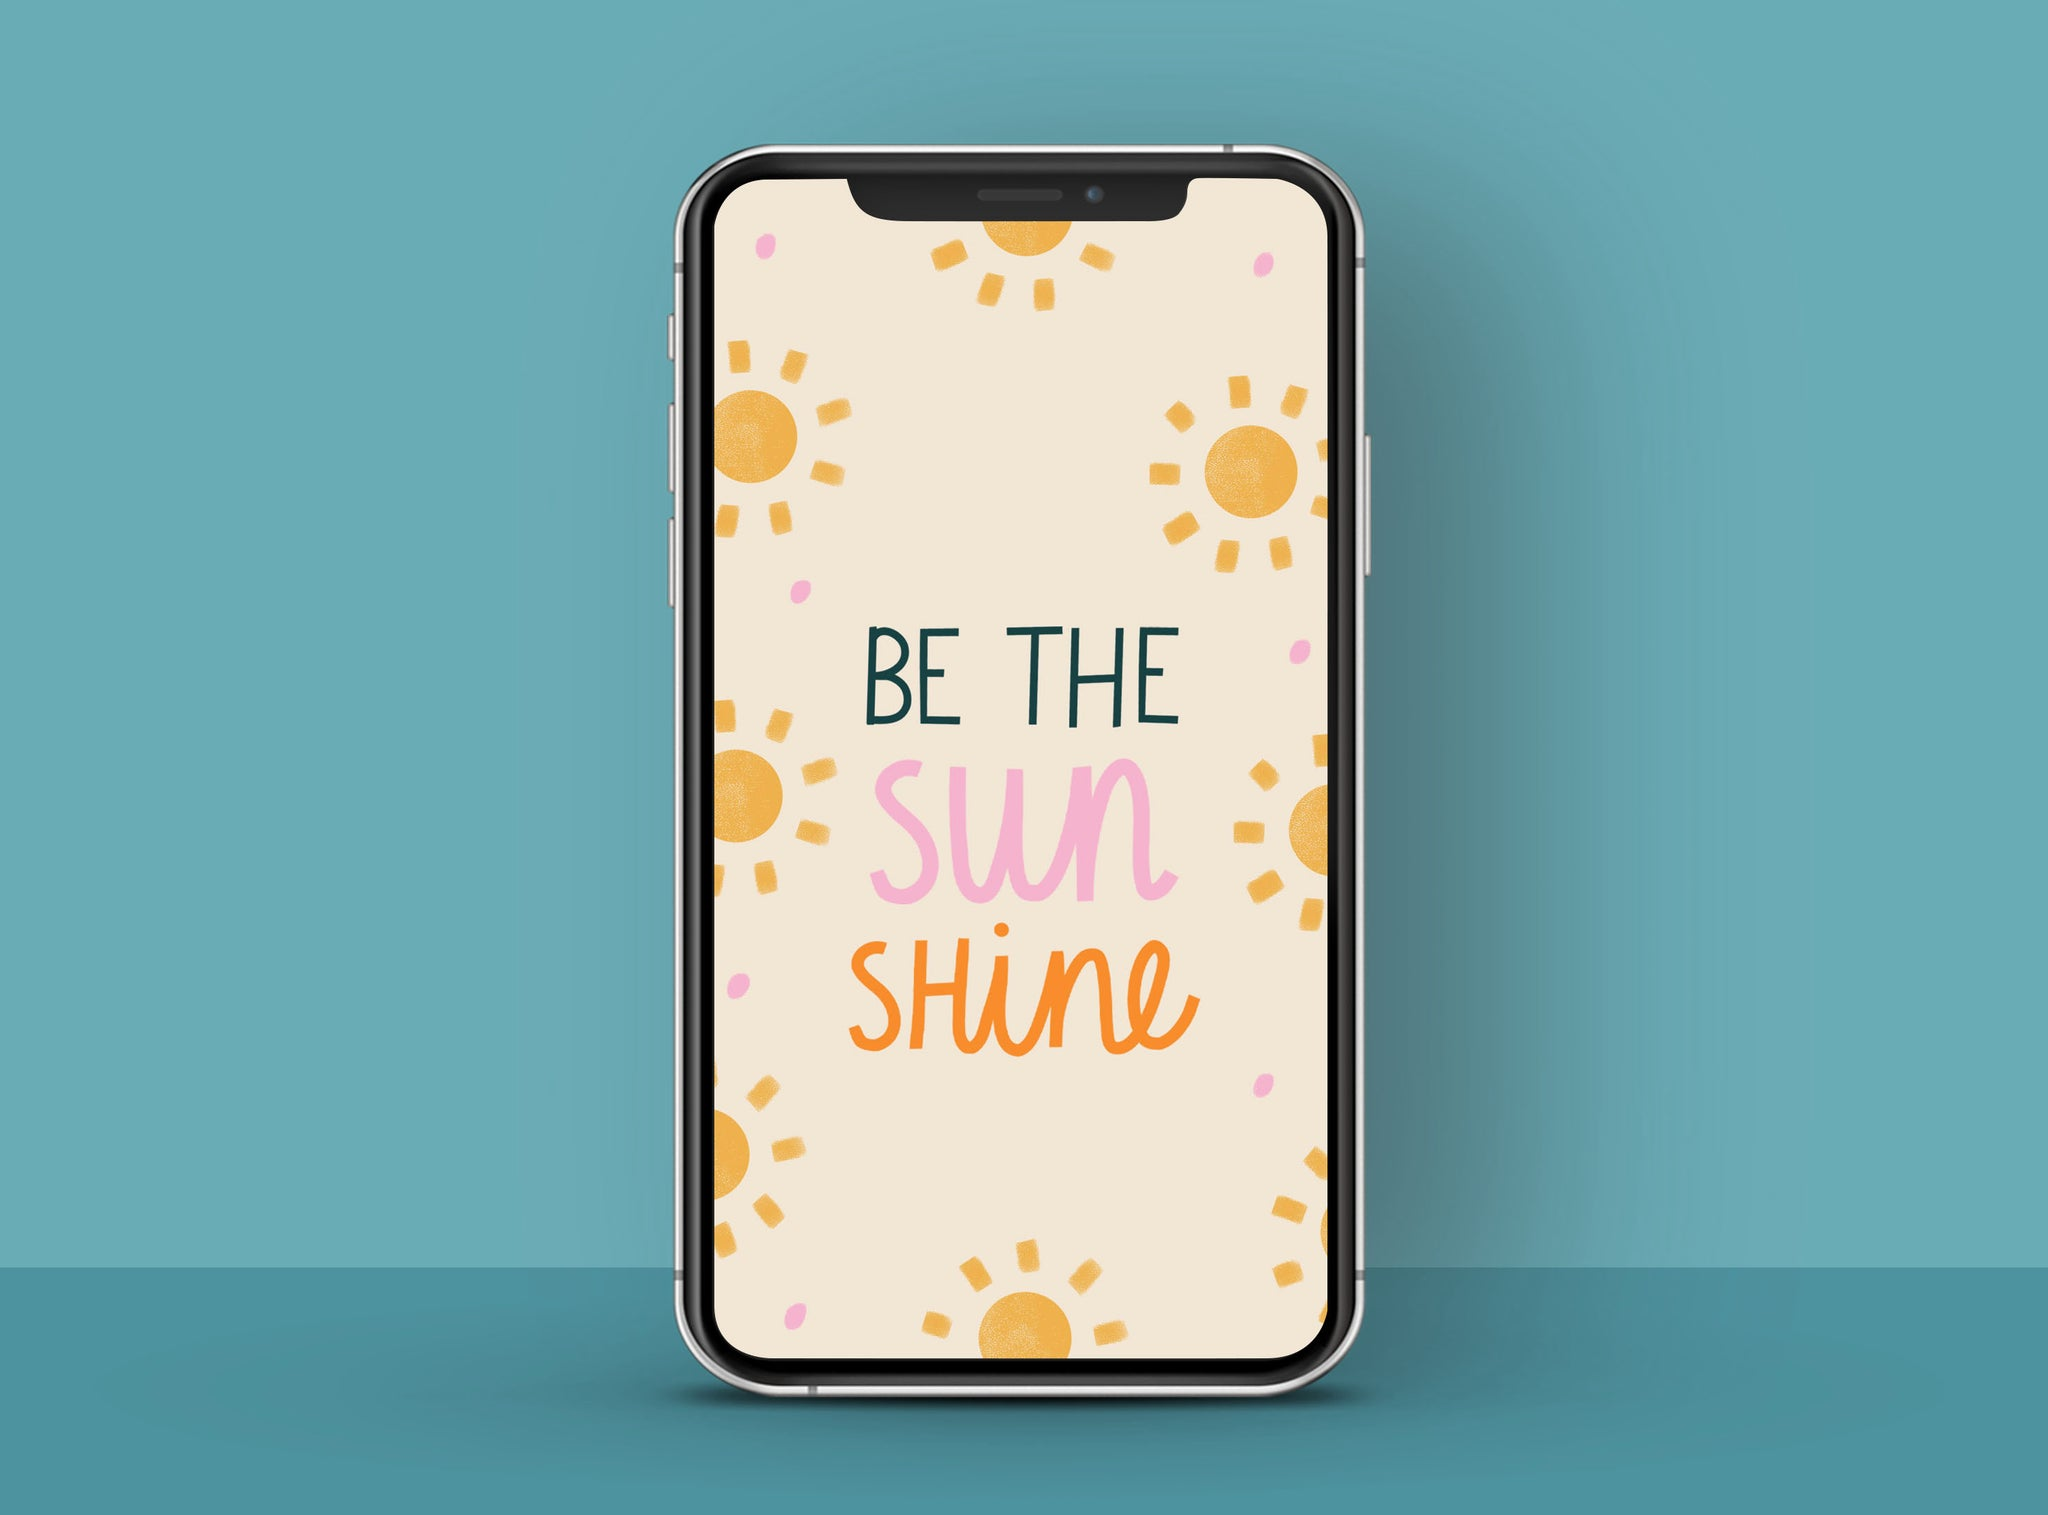 Cheerful and sunny phone wallpaper with a positive message 'Be the sunshine'| Raspberry Blossom